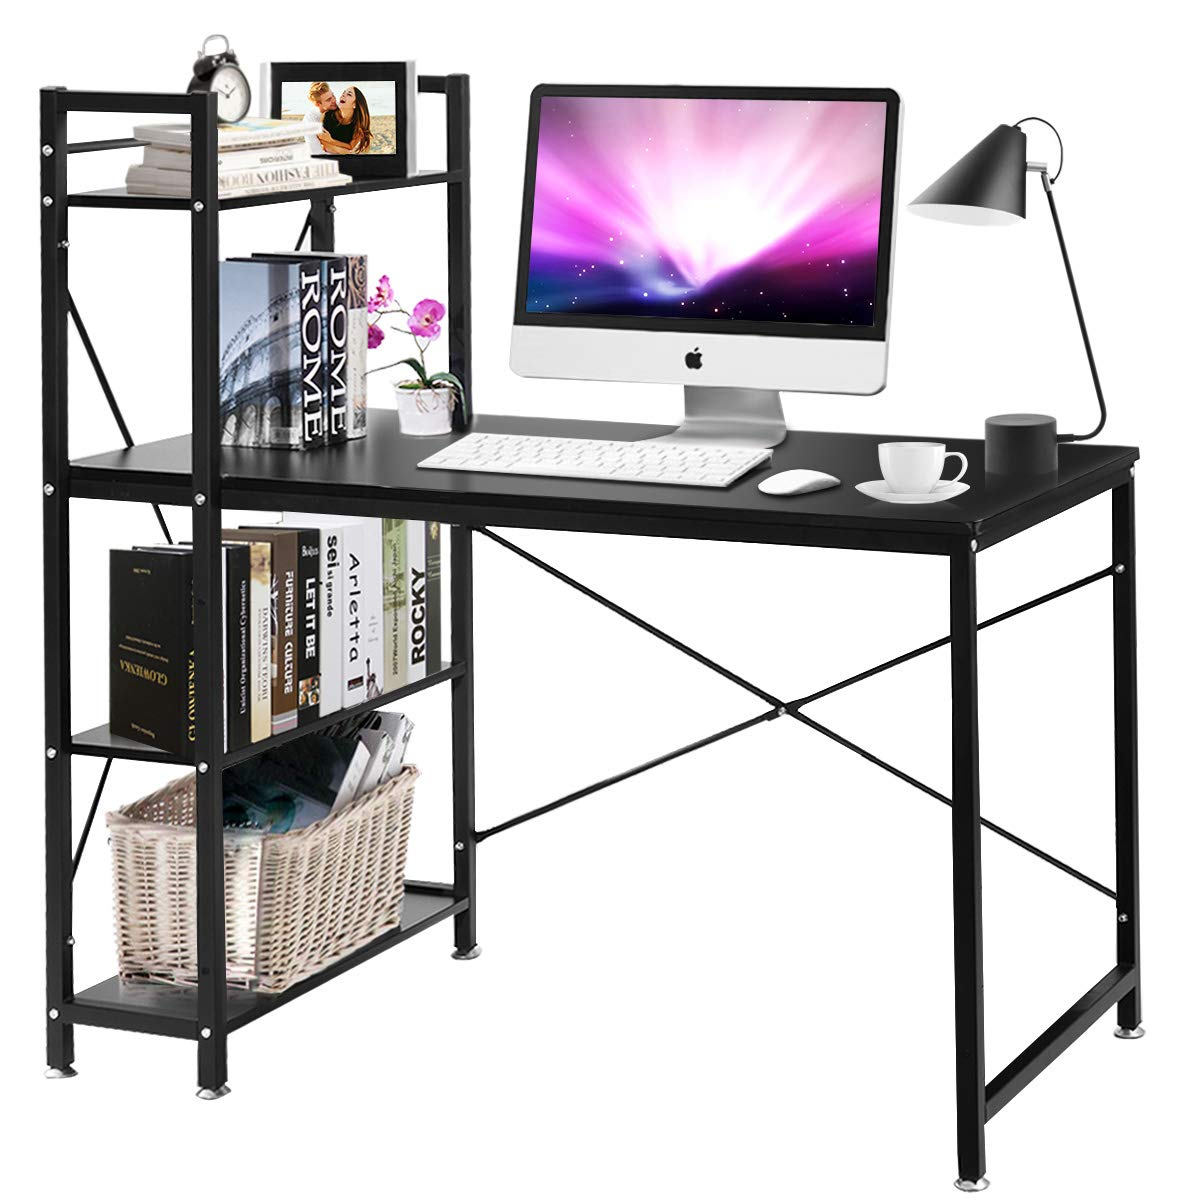 Tangkula 47.5'' Computer Desk, Modern Style Writing Study Table with 4 Tier Bookshelves, Home Office Desk, Compact Gaming Desk, Multipurpose PC Workstation(Black) by Tangkula